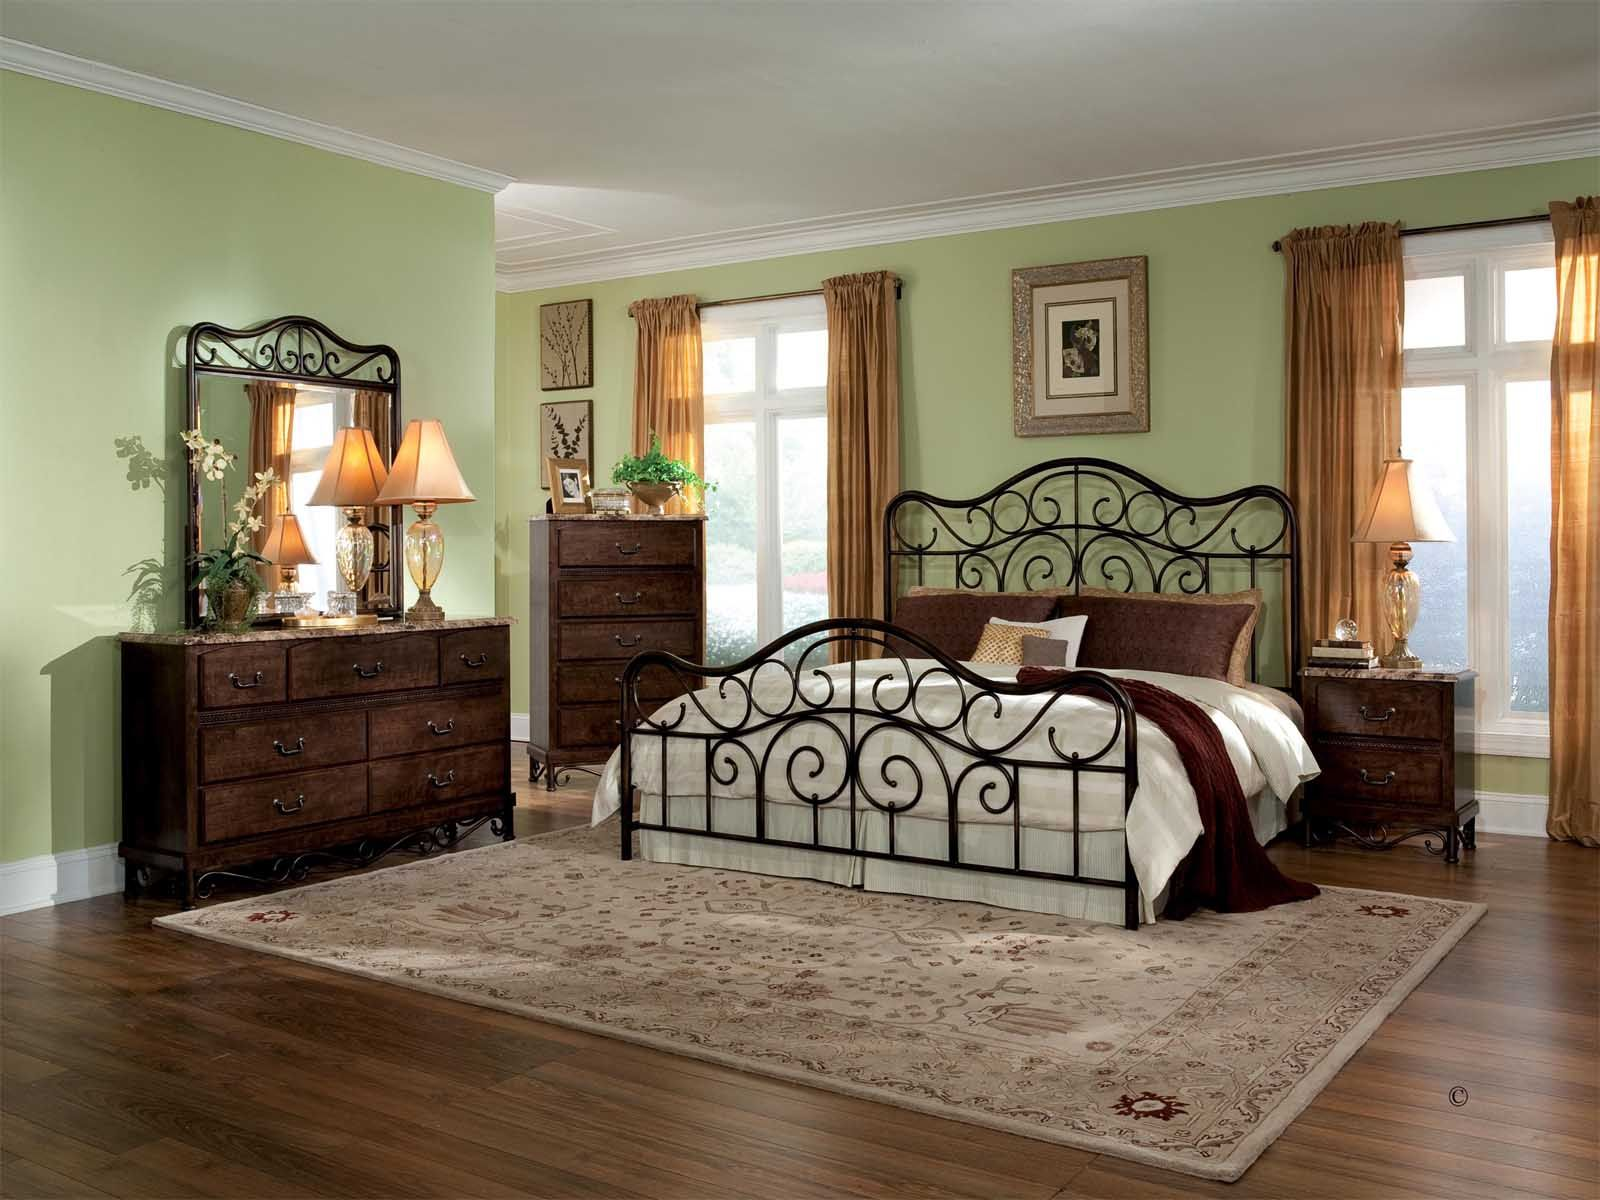 Pictures of traditional bedrooms - Image Result For Traditional Bedrooms With Metal Beds